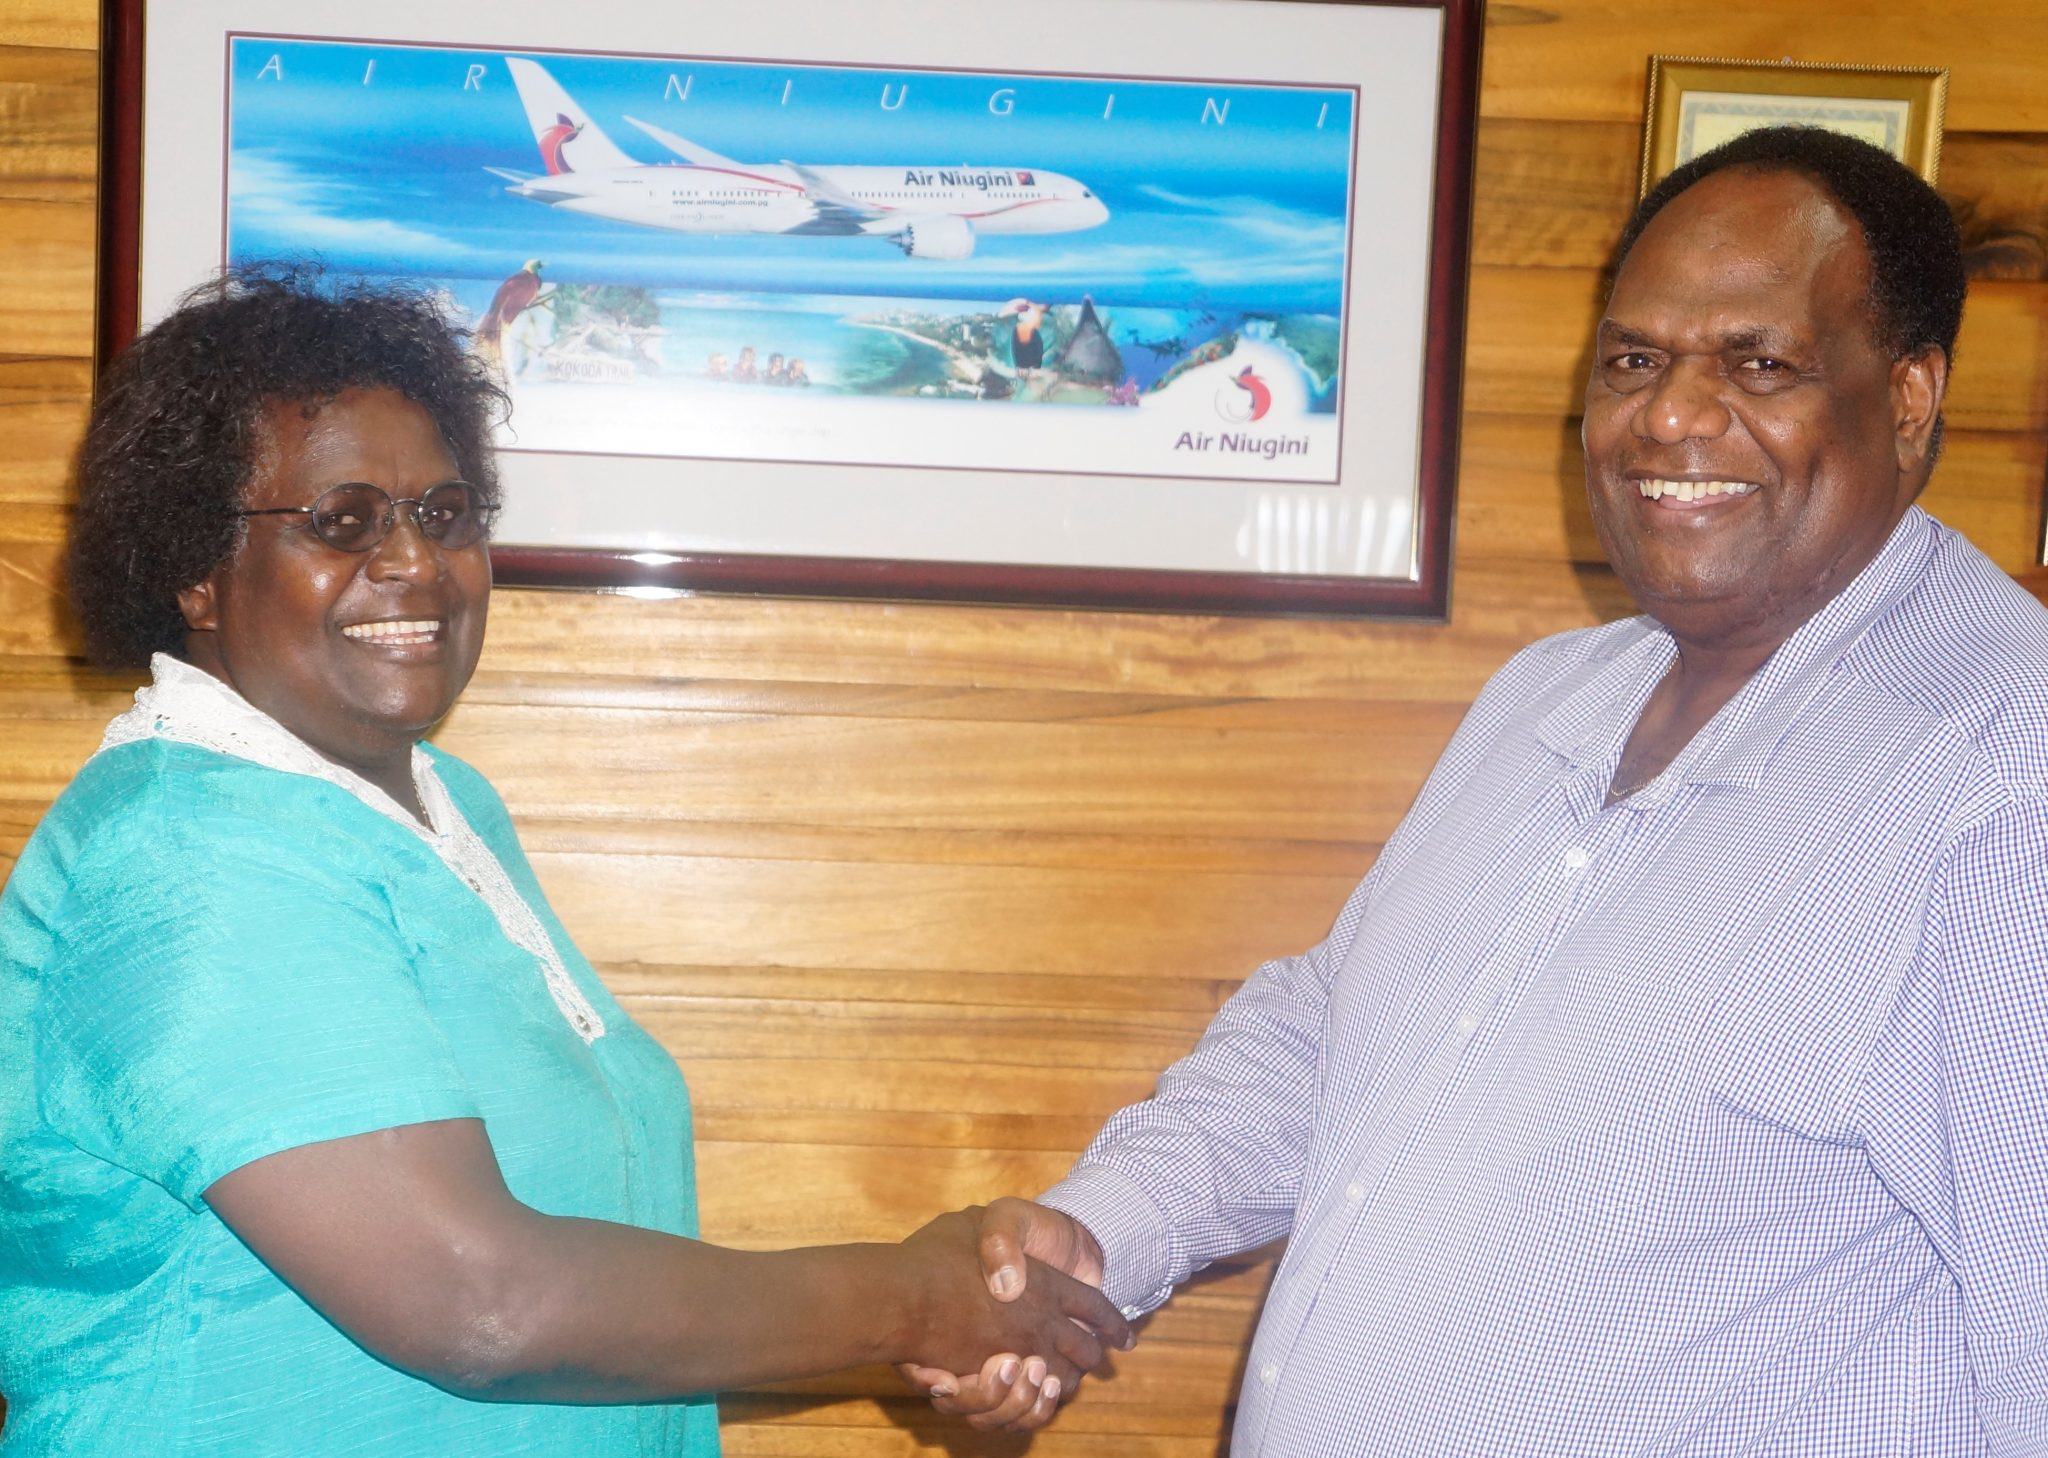 Kilo appointed to head Air Niugini Honiara Office